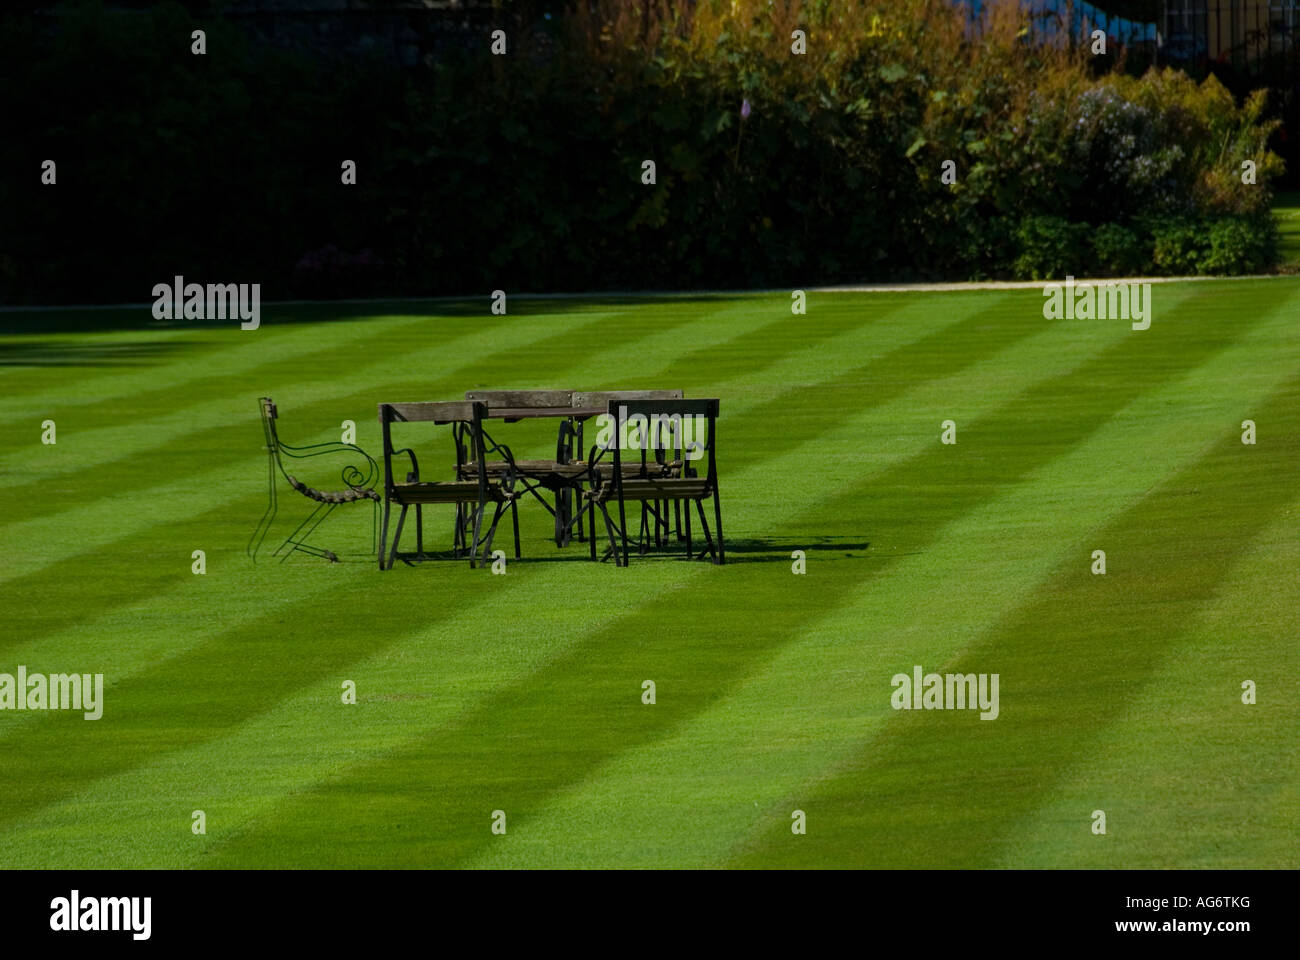 A table and Chairs layed out on a Manicured College Lawn in the University City of Oxford England - Stock Image